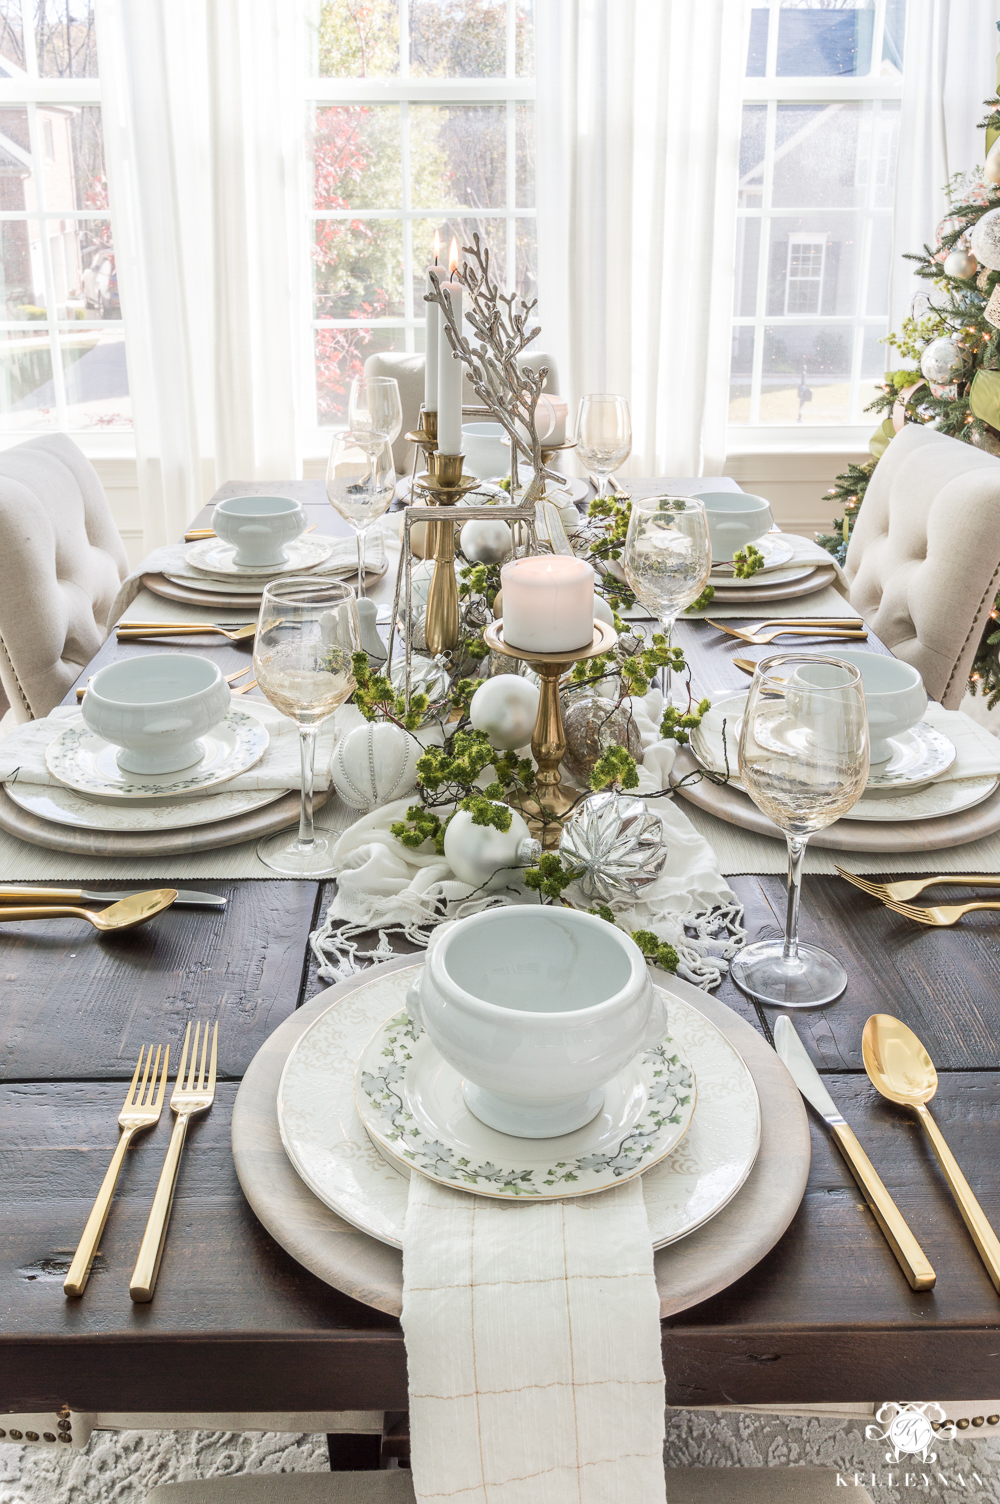 Christmas Tablescape Idea with Reindeer and Ornament Centerpiece